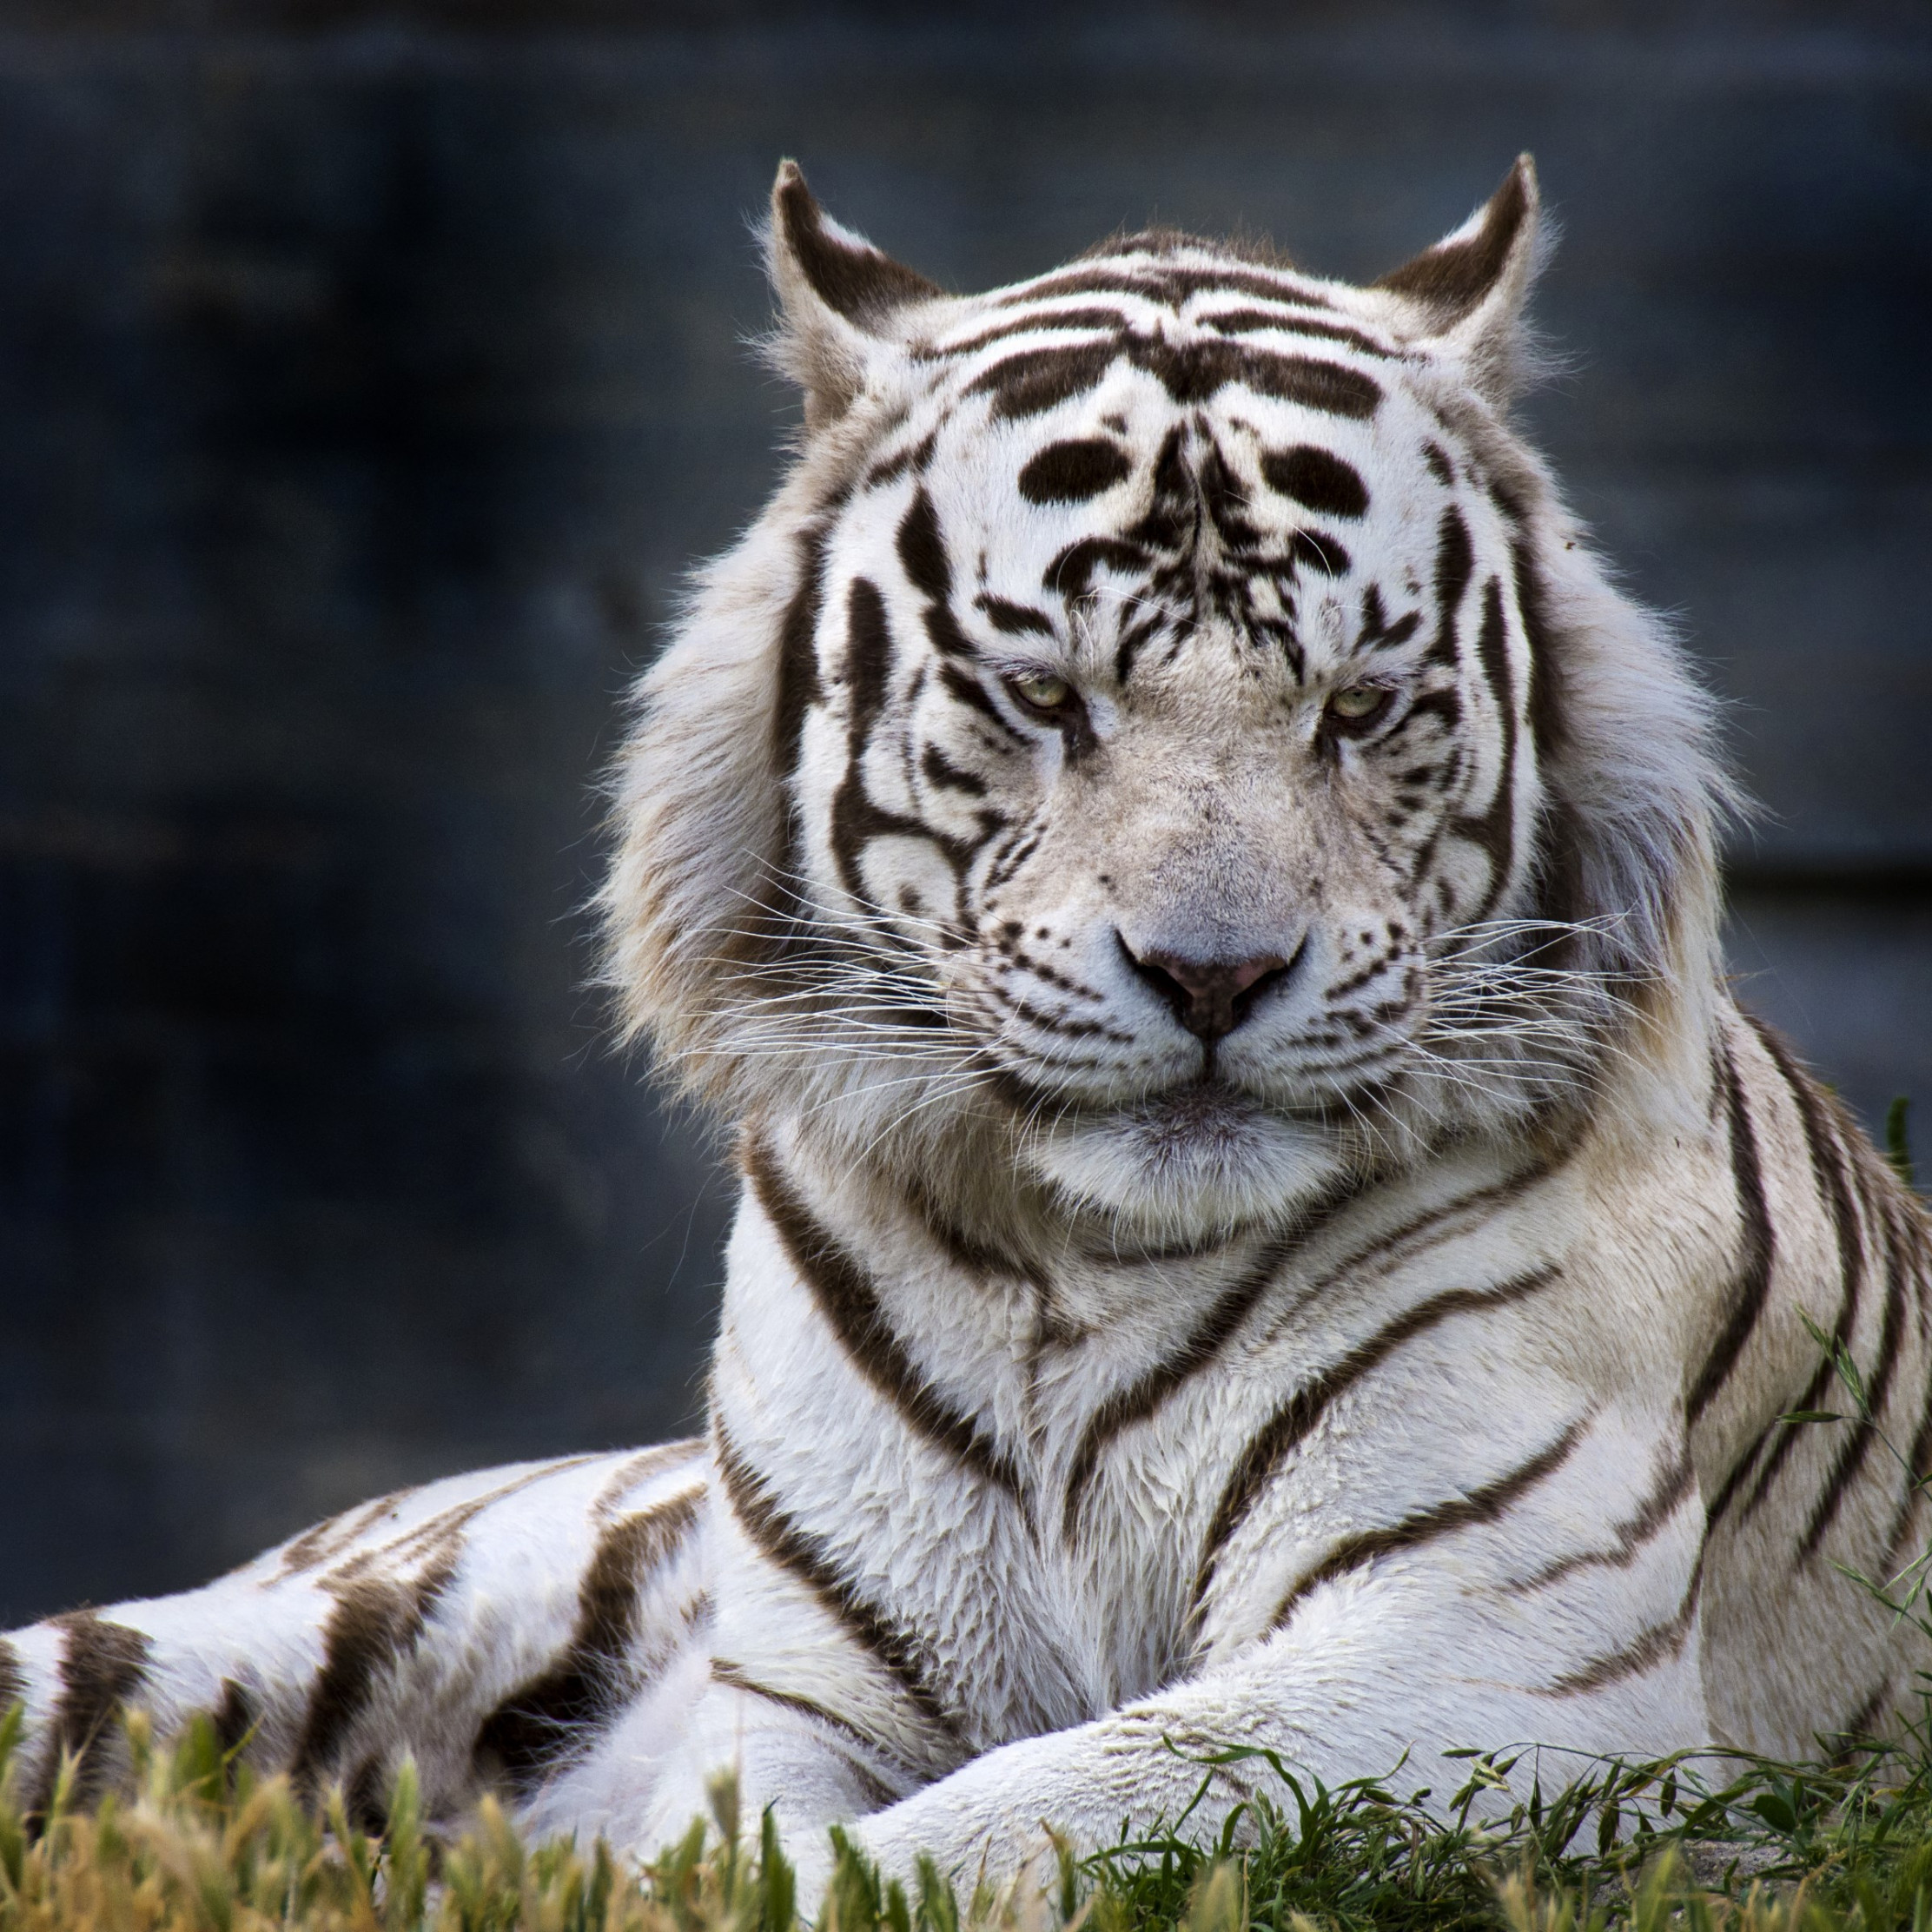 The white tiger from Madrid Zoo | 2224x2224 wallpaper